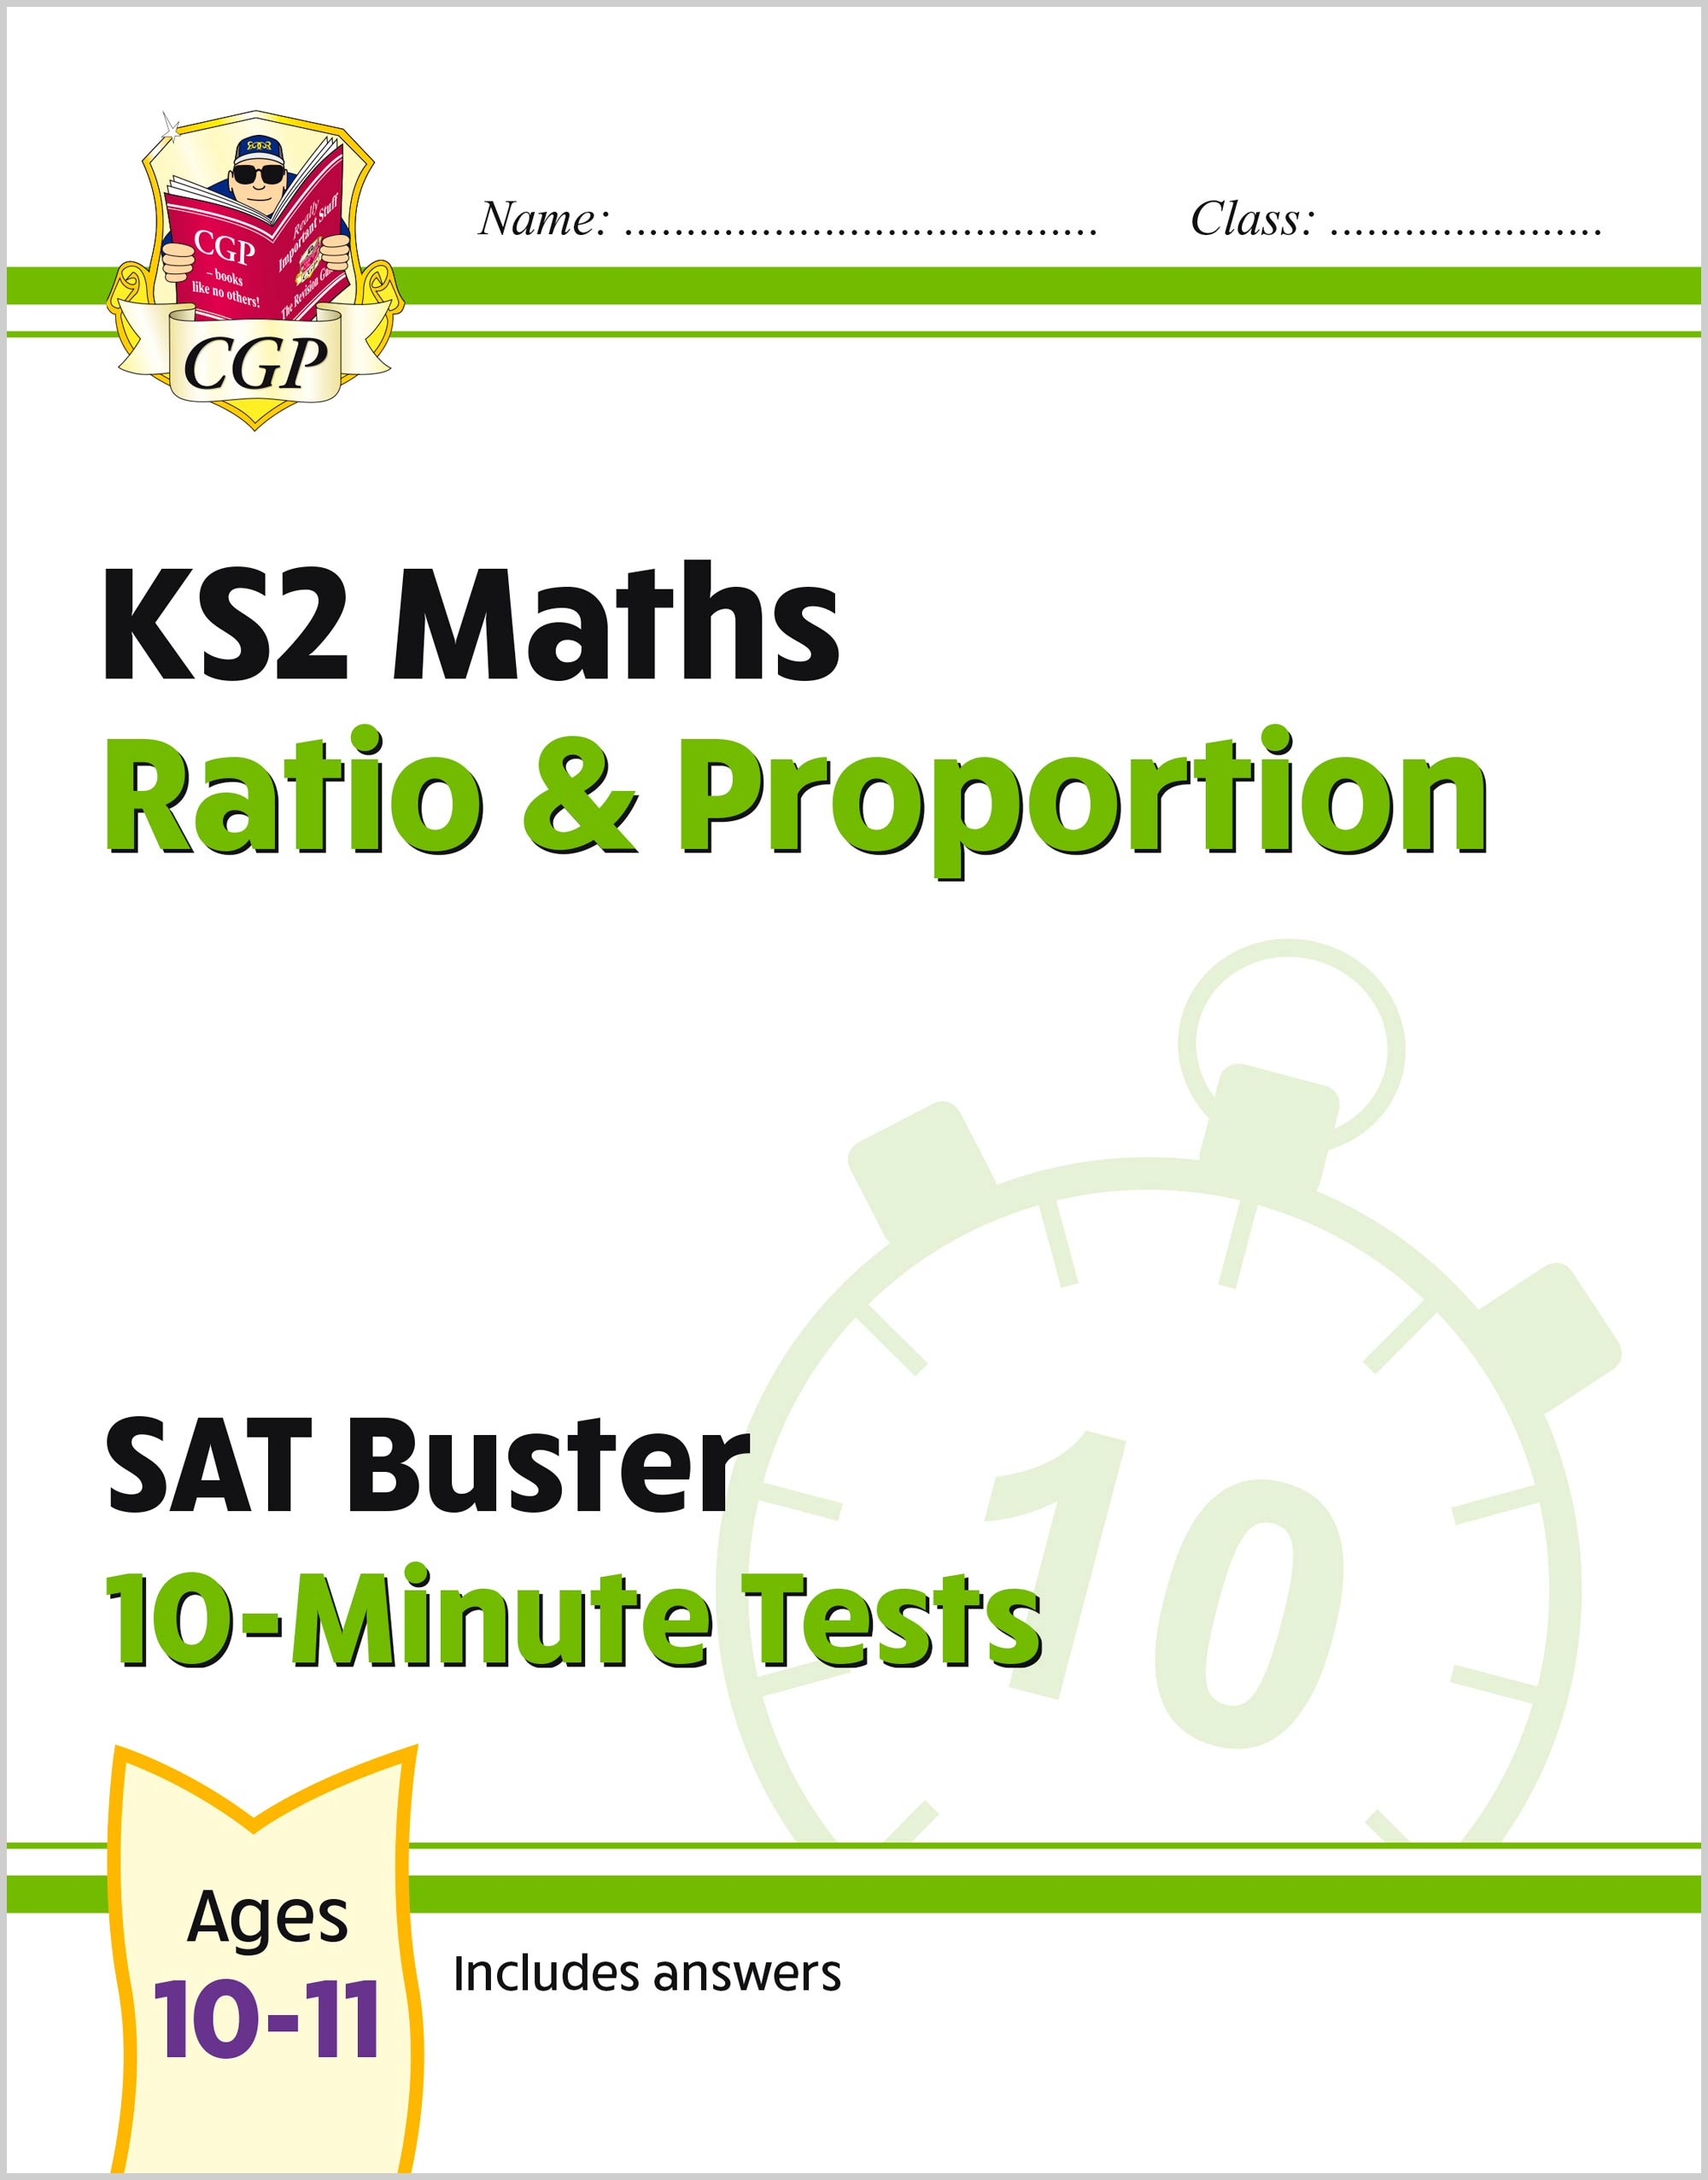 MRPXP21 - New KS2 Maths SAT Buster 10-Minute Tests - Ratio & Proportion